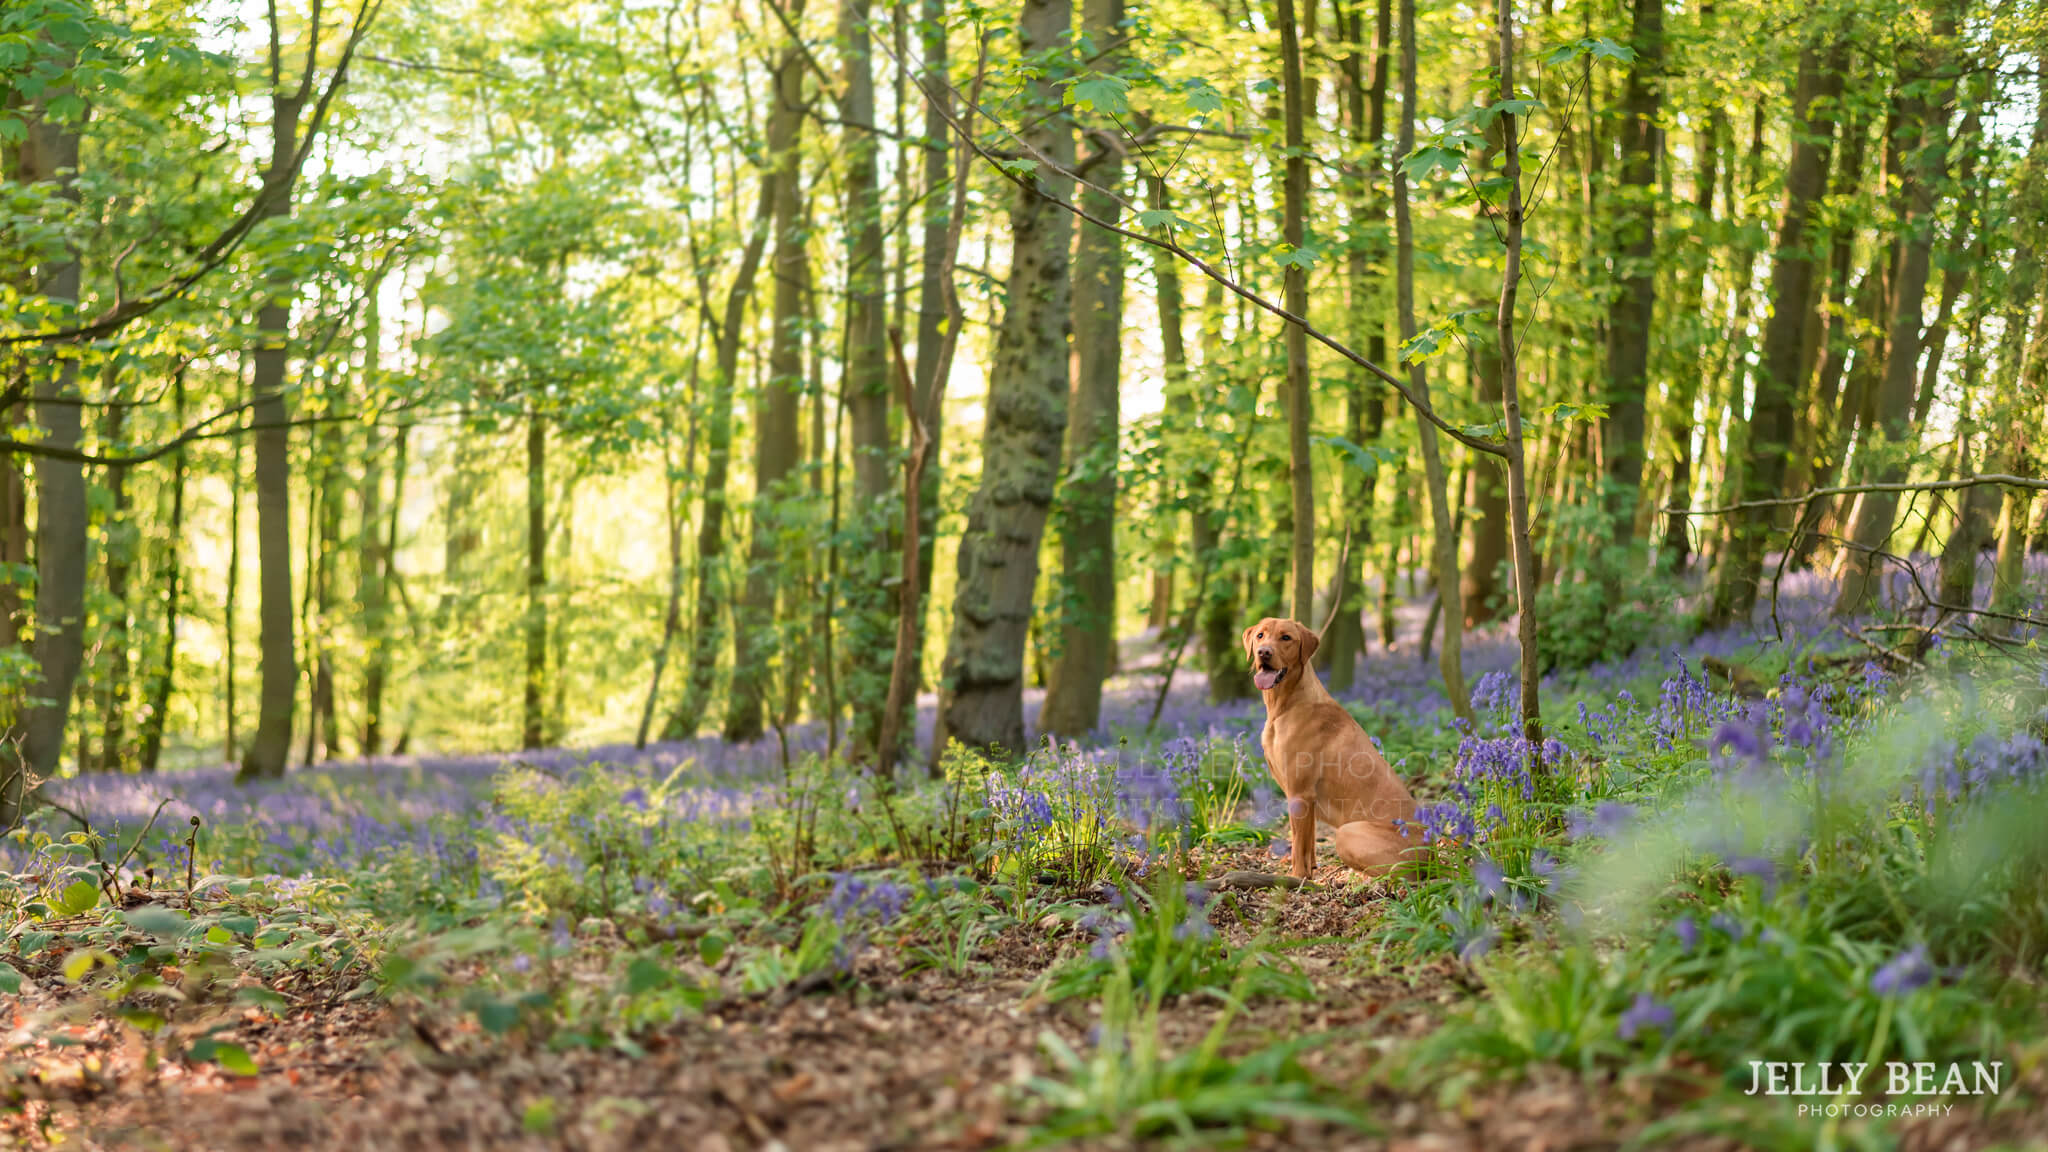 Panroamic shot of dog in the woods